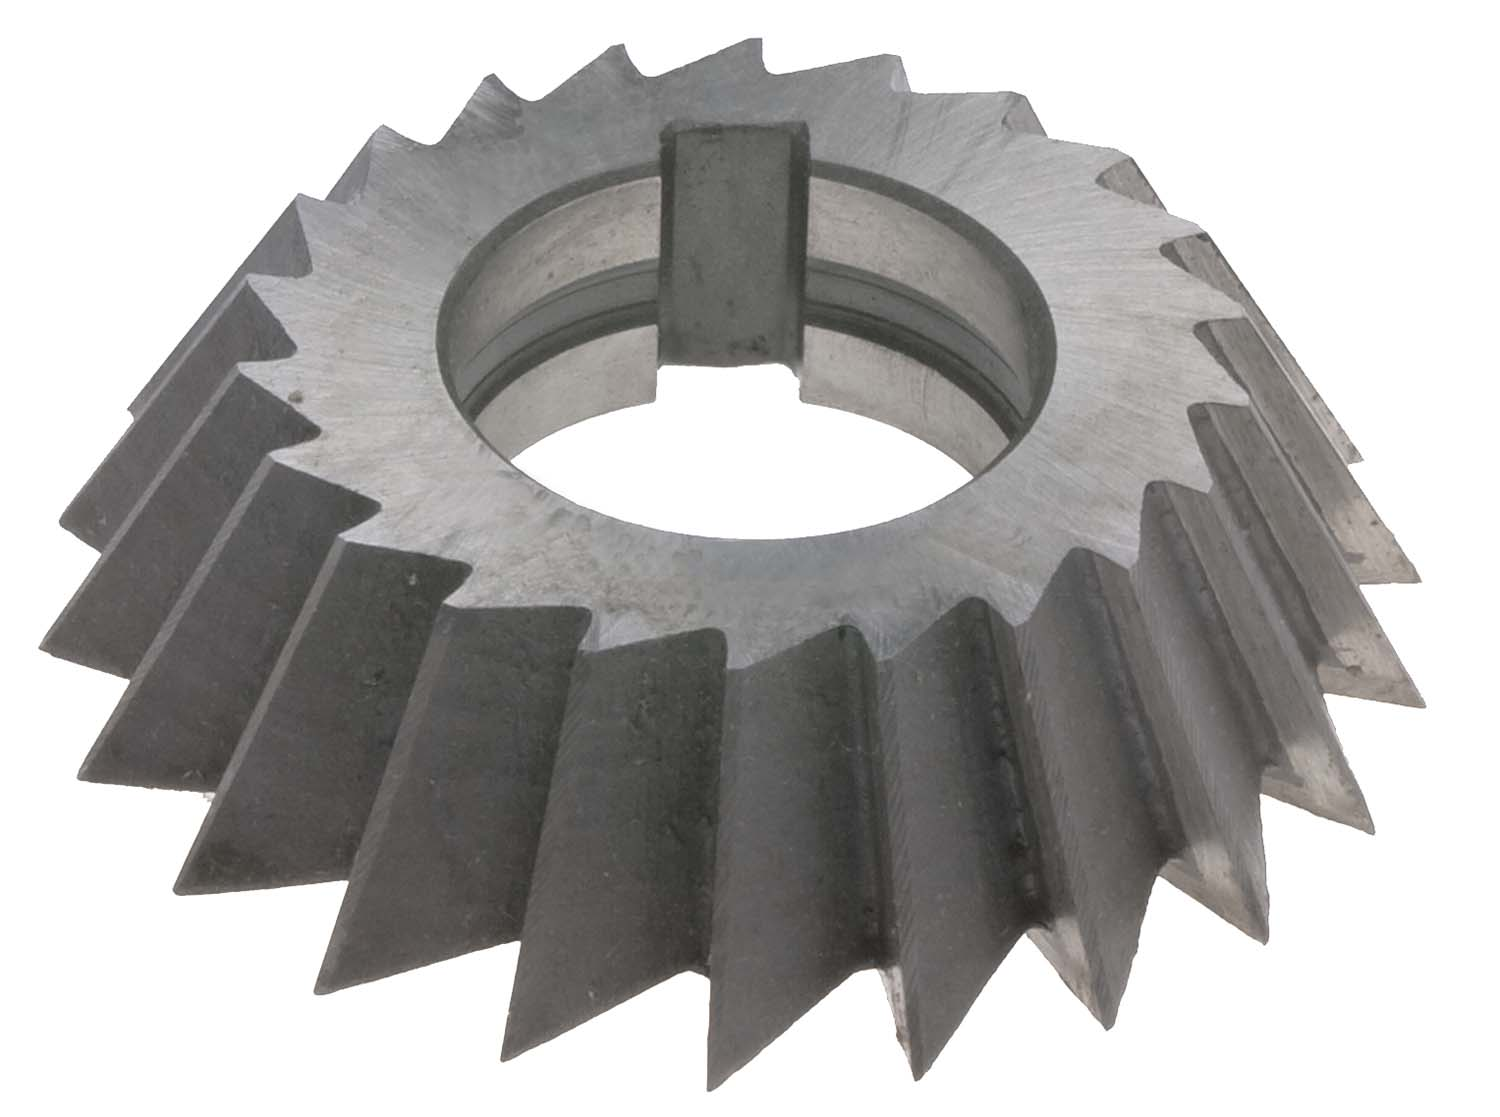 "6 X 3/4 X 1-1/4""  Right Hand 60 Degree Single Angle Cutter, High Speed Steel"